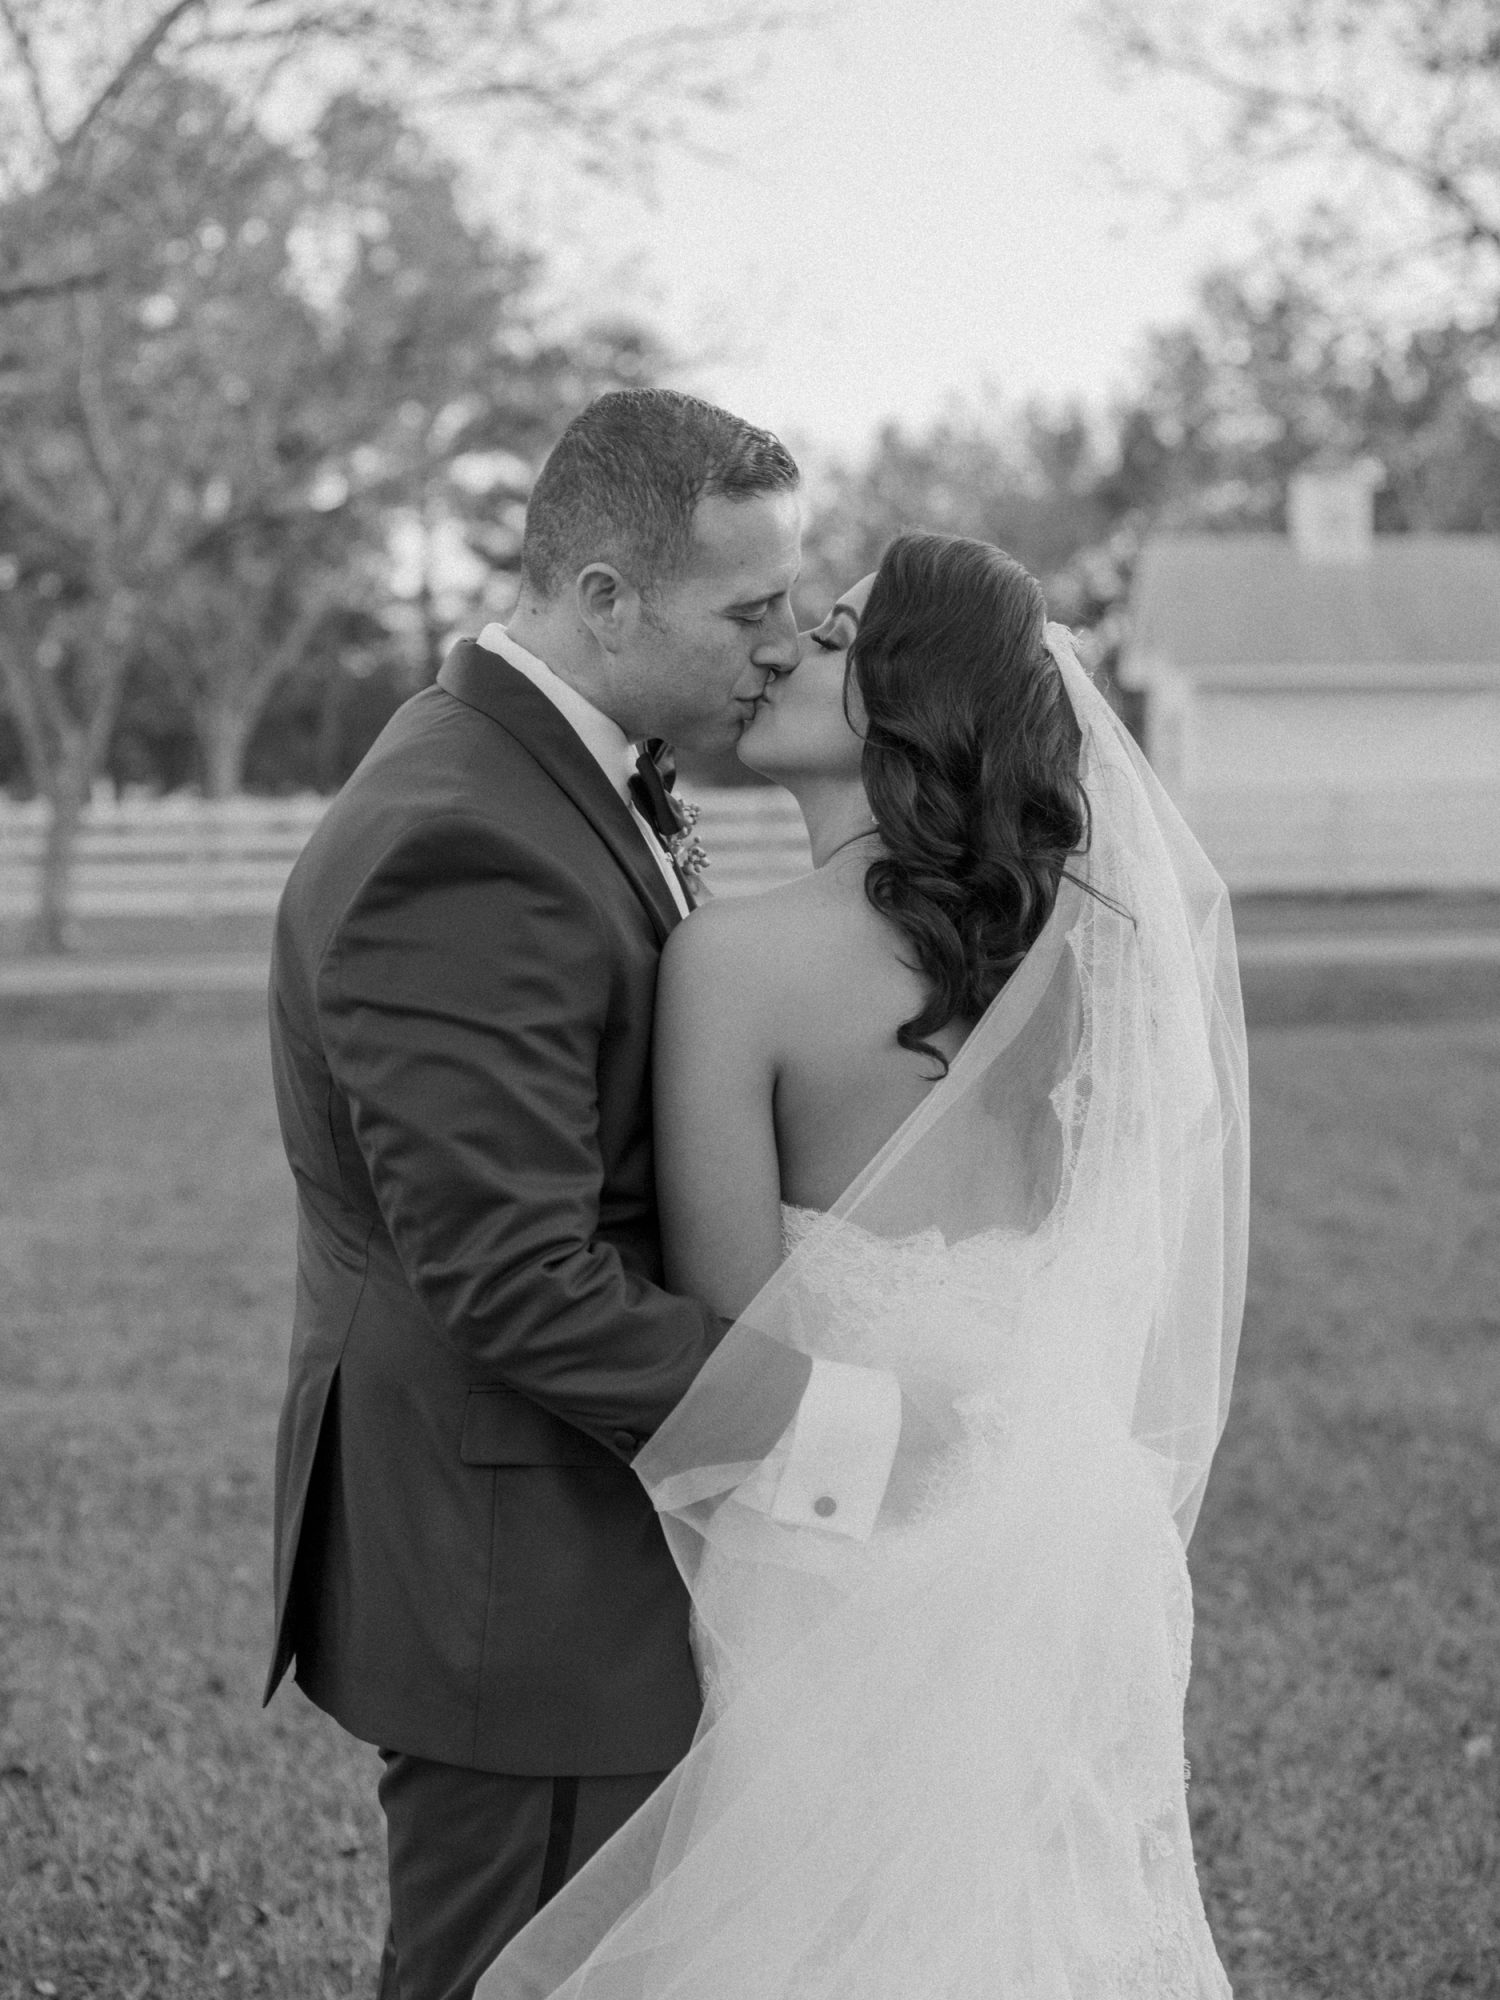 suzanne joseph wedding couple corbin gurkin